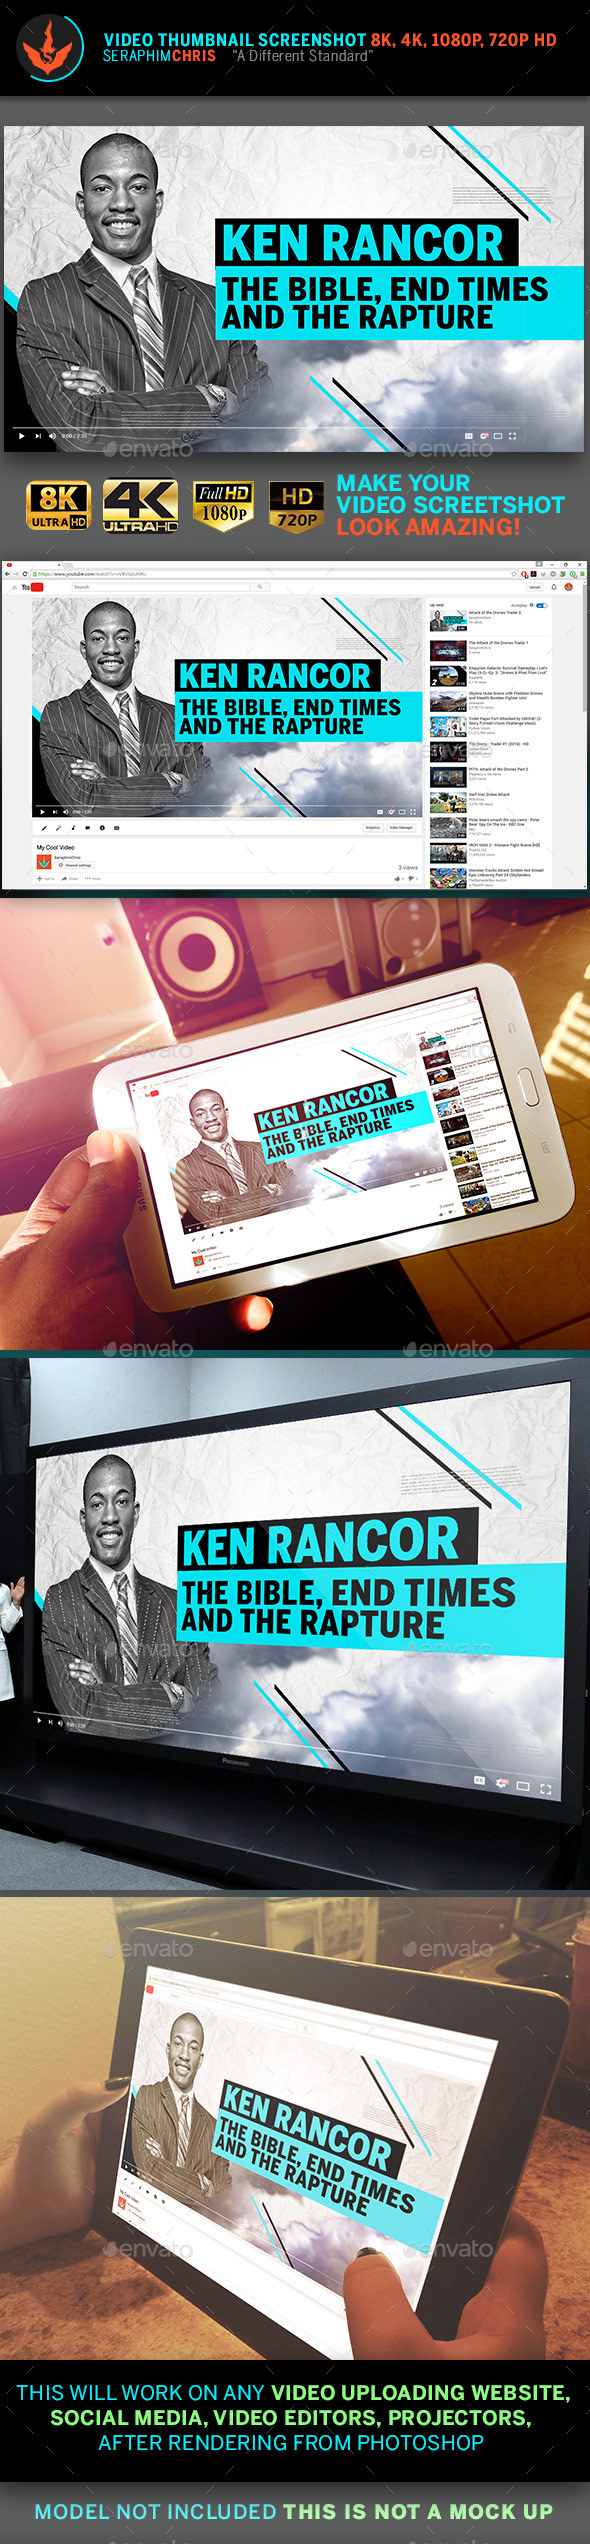 Sermon Title YouTube Video Thumbnail Screenshot Template - YouTube Social Media